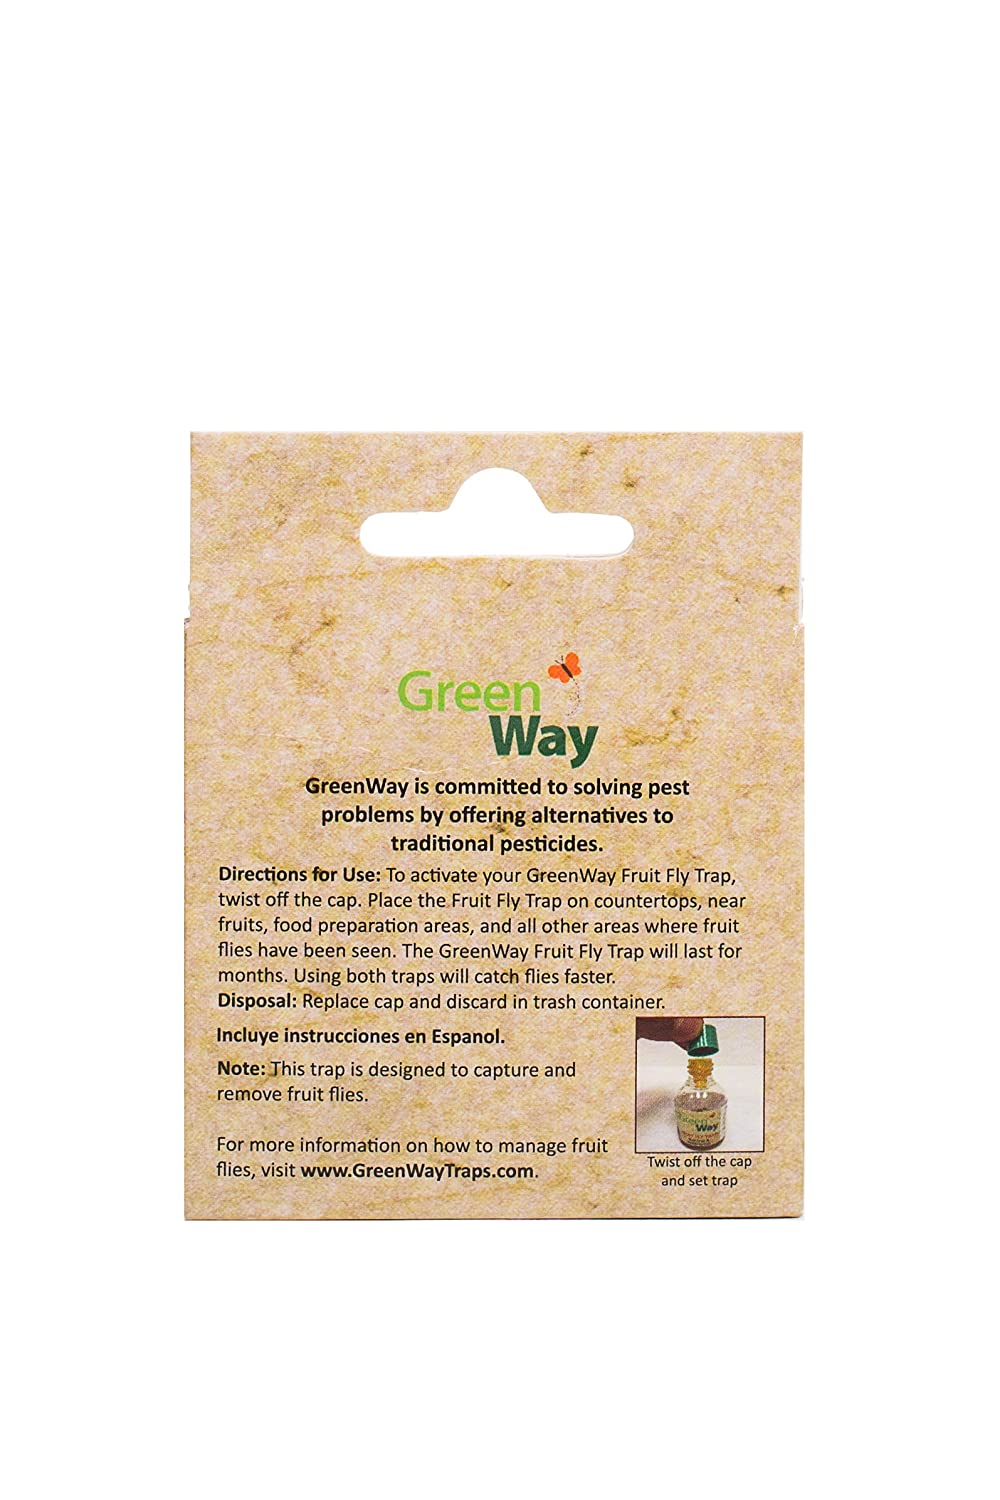 Amazon.com : GreenWay Fruit Fly Trap (2 bottles) | Natural Liquid Attractant, Ready To Use Bottles | Safe, Non-Toxic with No Insecticides or Odor, ...